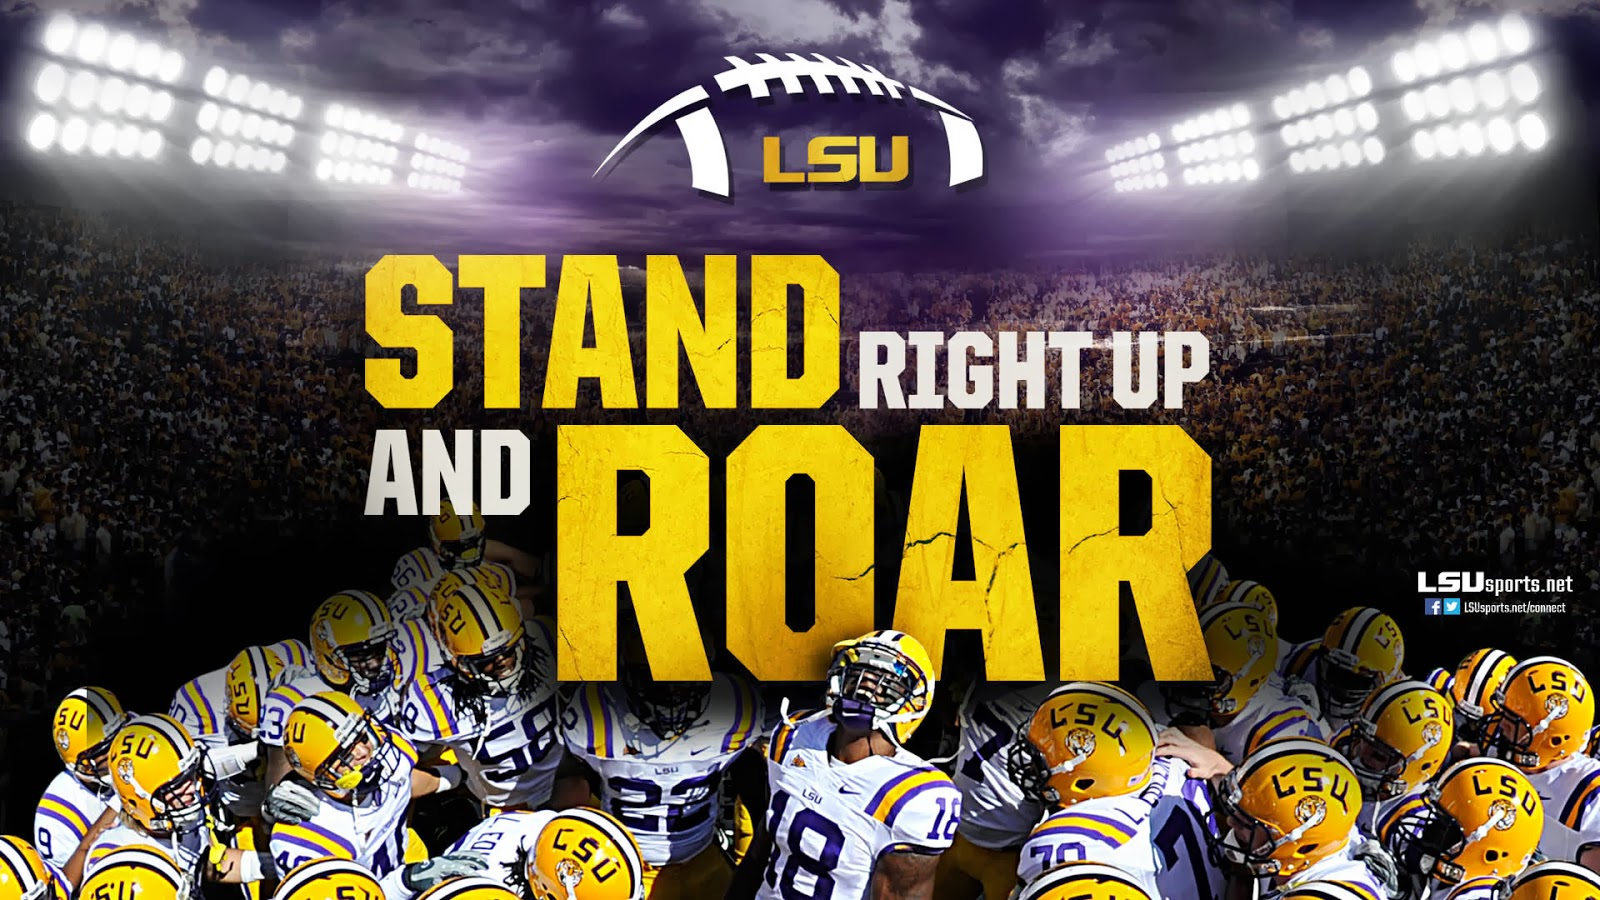 Download lsu football wallpaper in high resolution for free. Get lsu football wallpaper and make this lsu football wallpaper for your desktop, tablet, ...